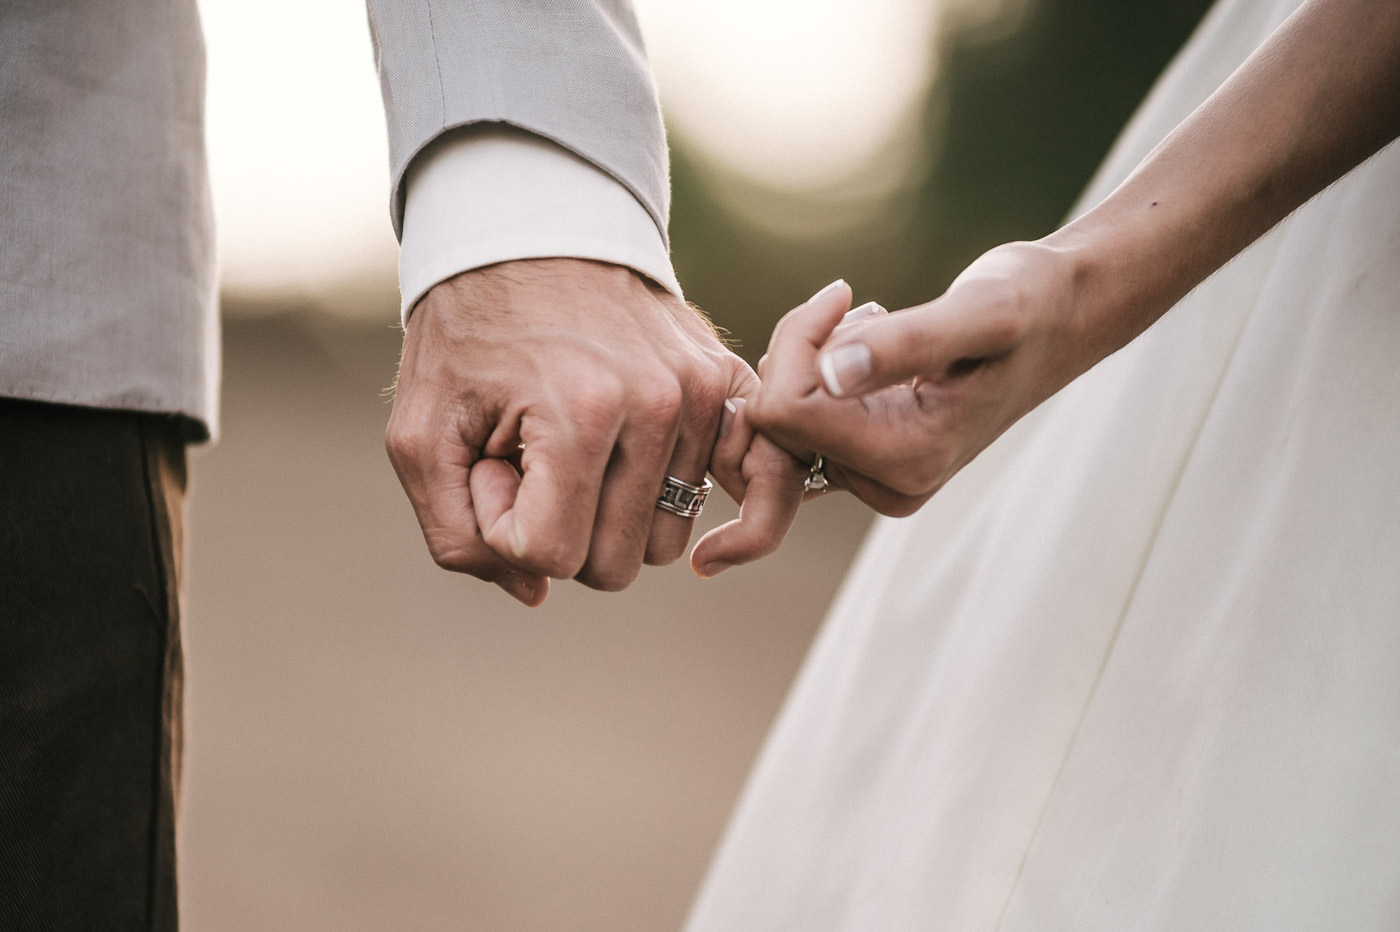 Bride and groom pinky promise to love each other forever